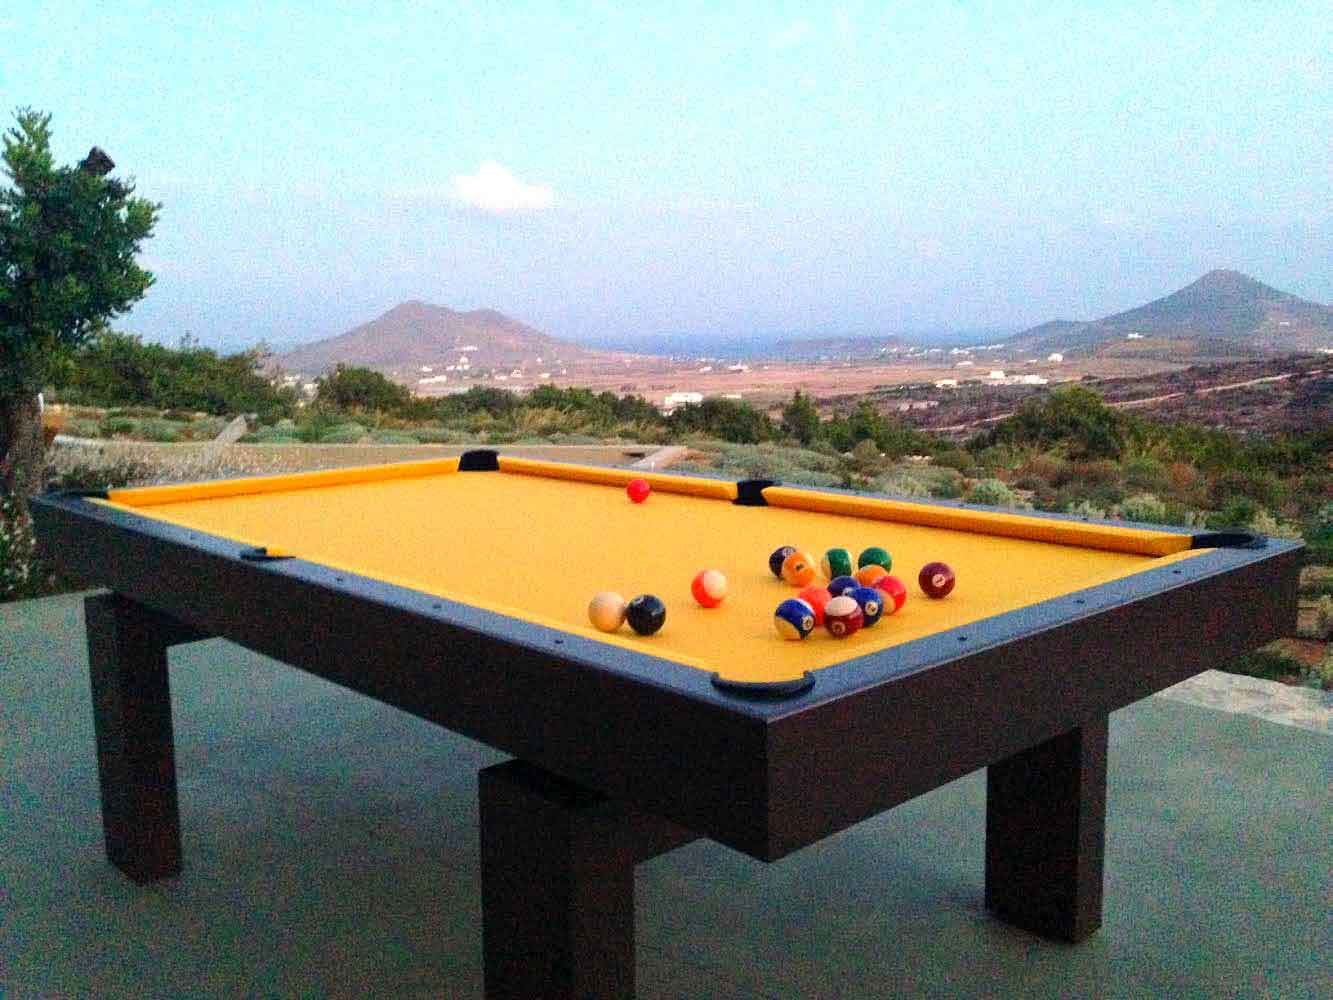 A South Beach custom outdoor pool table made by R&R Outdoors All Weather Billiards for a client in Greece